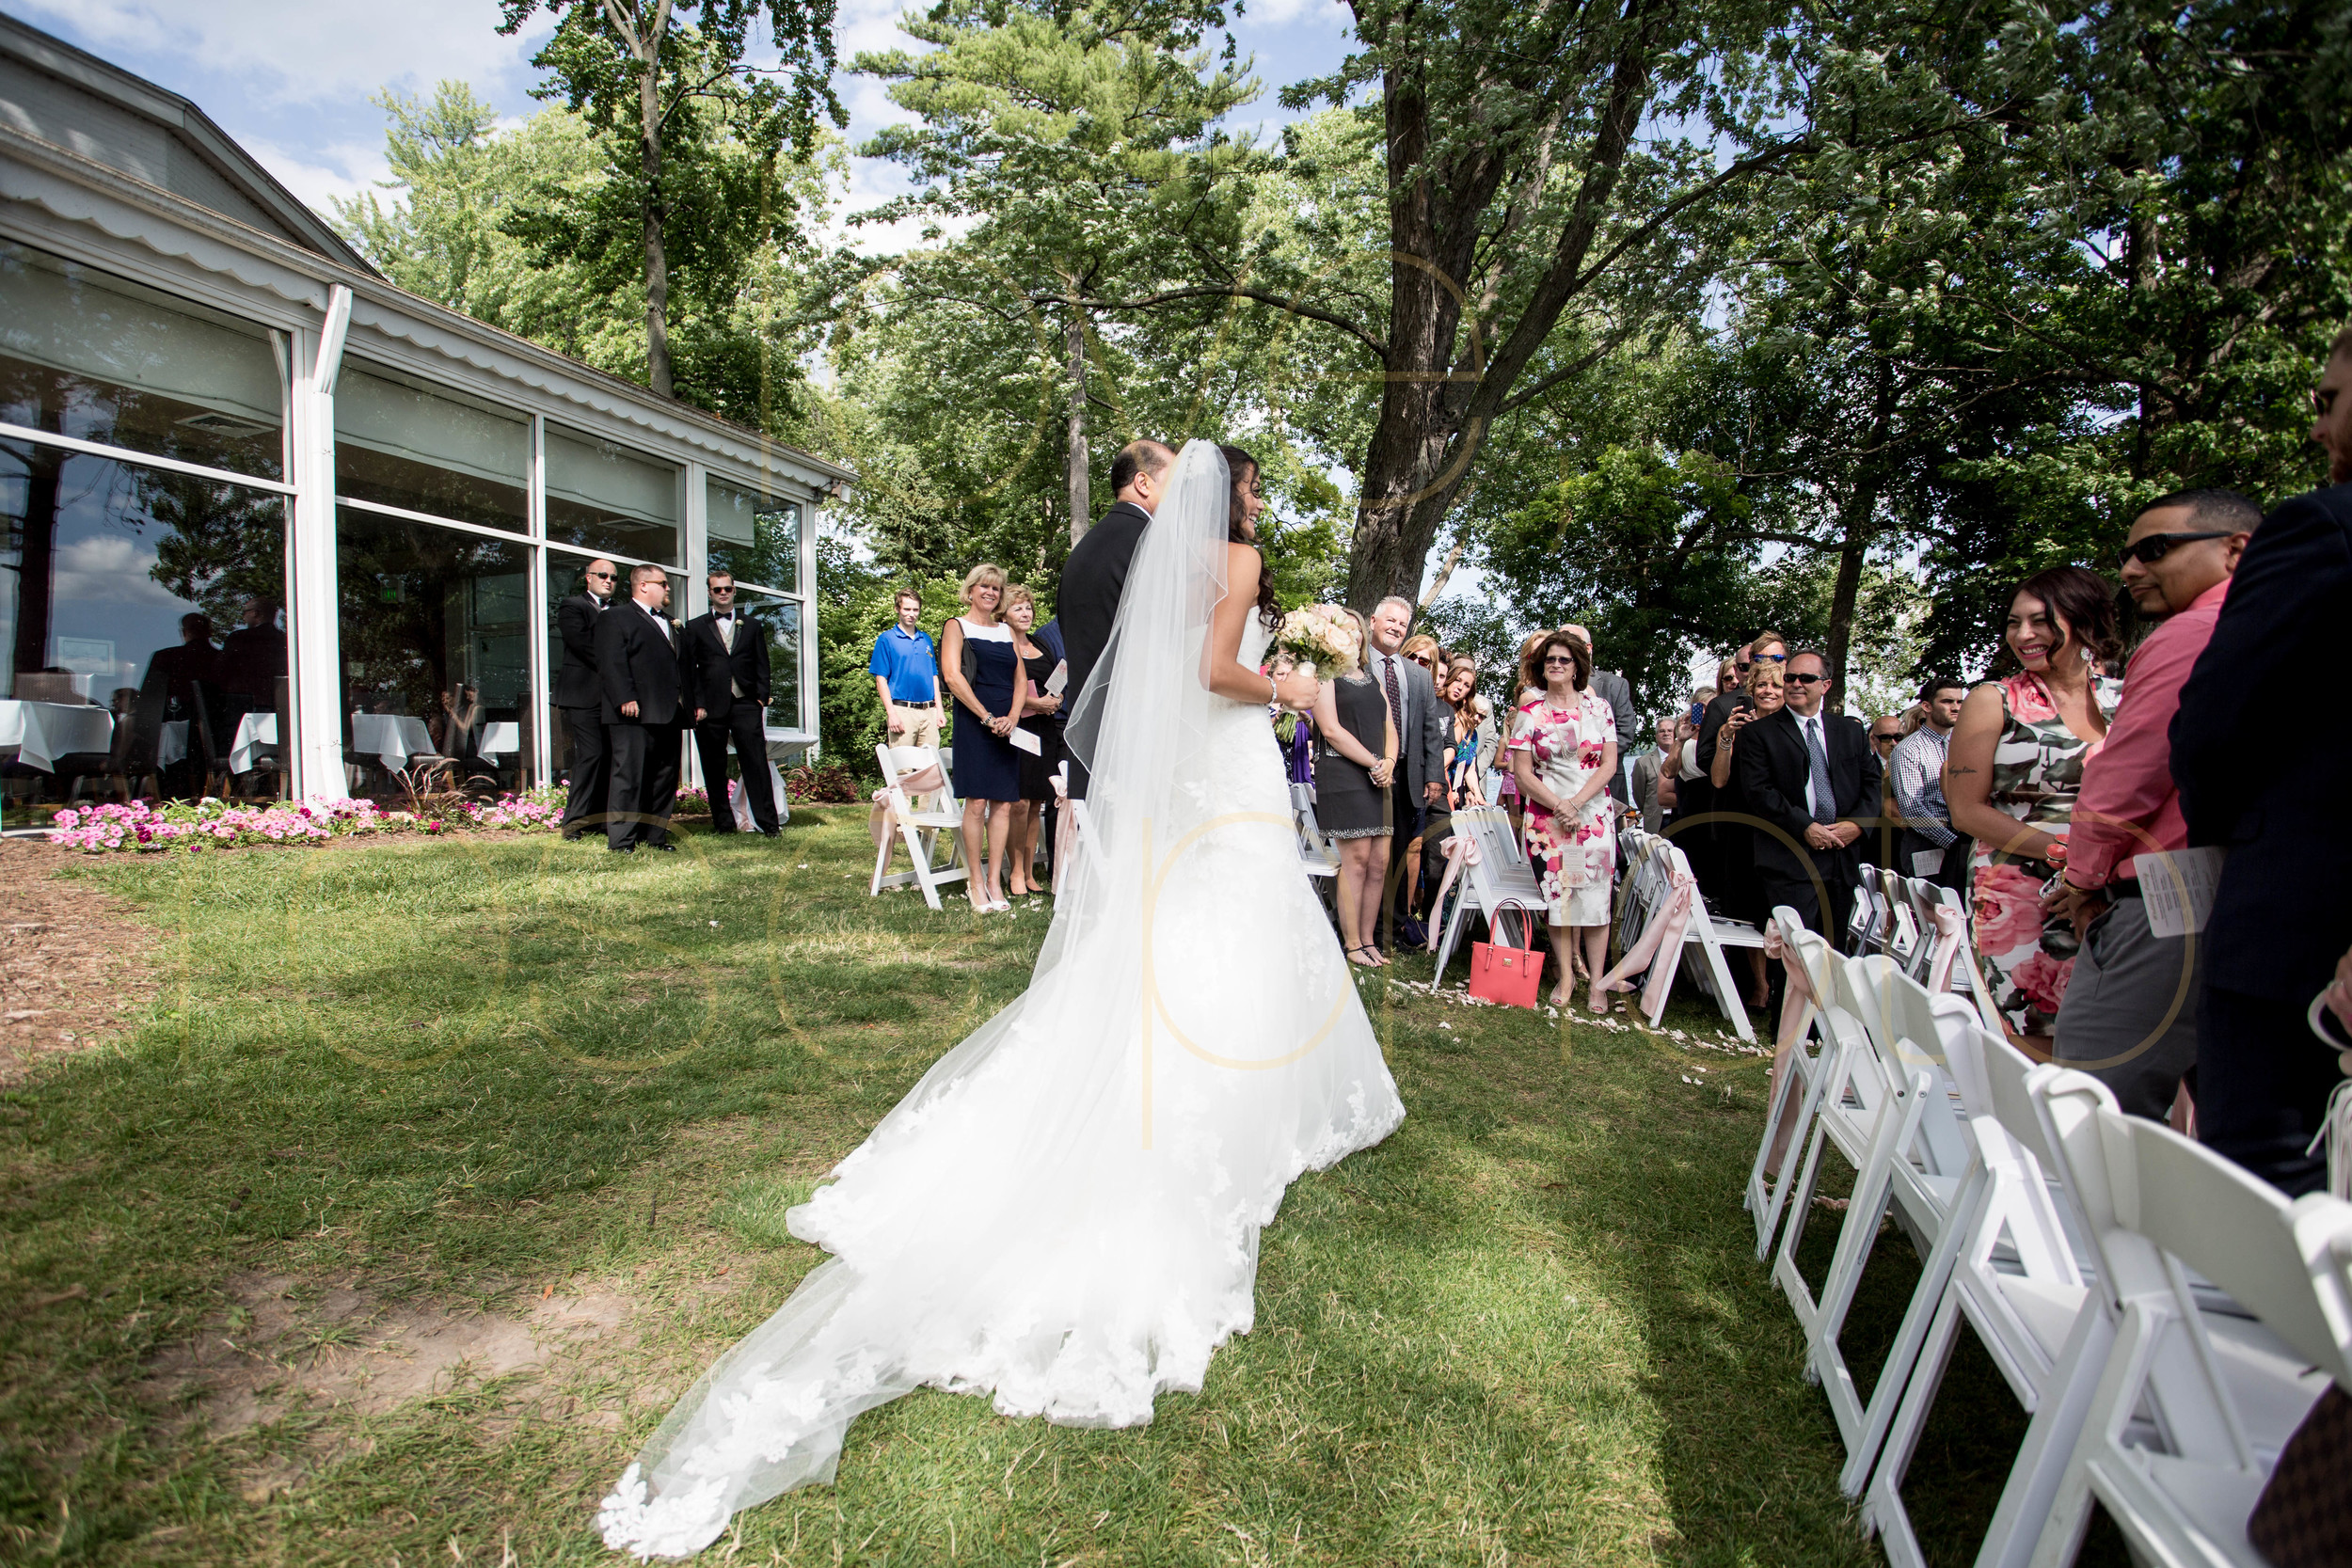 Claudia + Grant Heidel House Wiscon lake wedding best of chicago wedding photographers -19.jpg